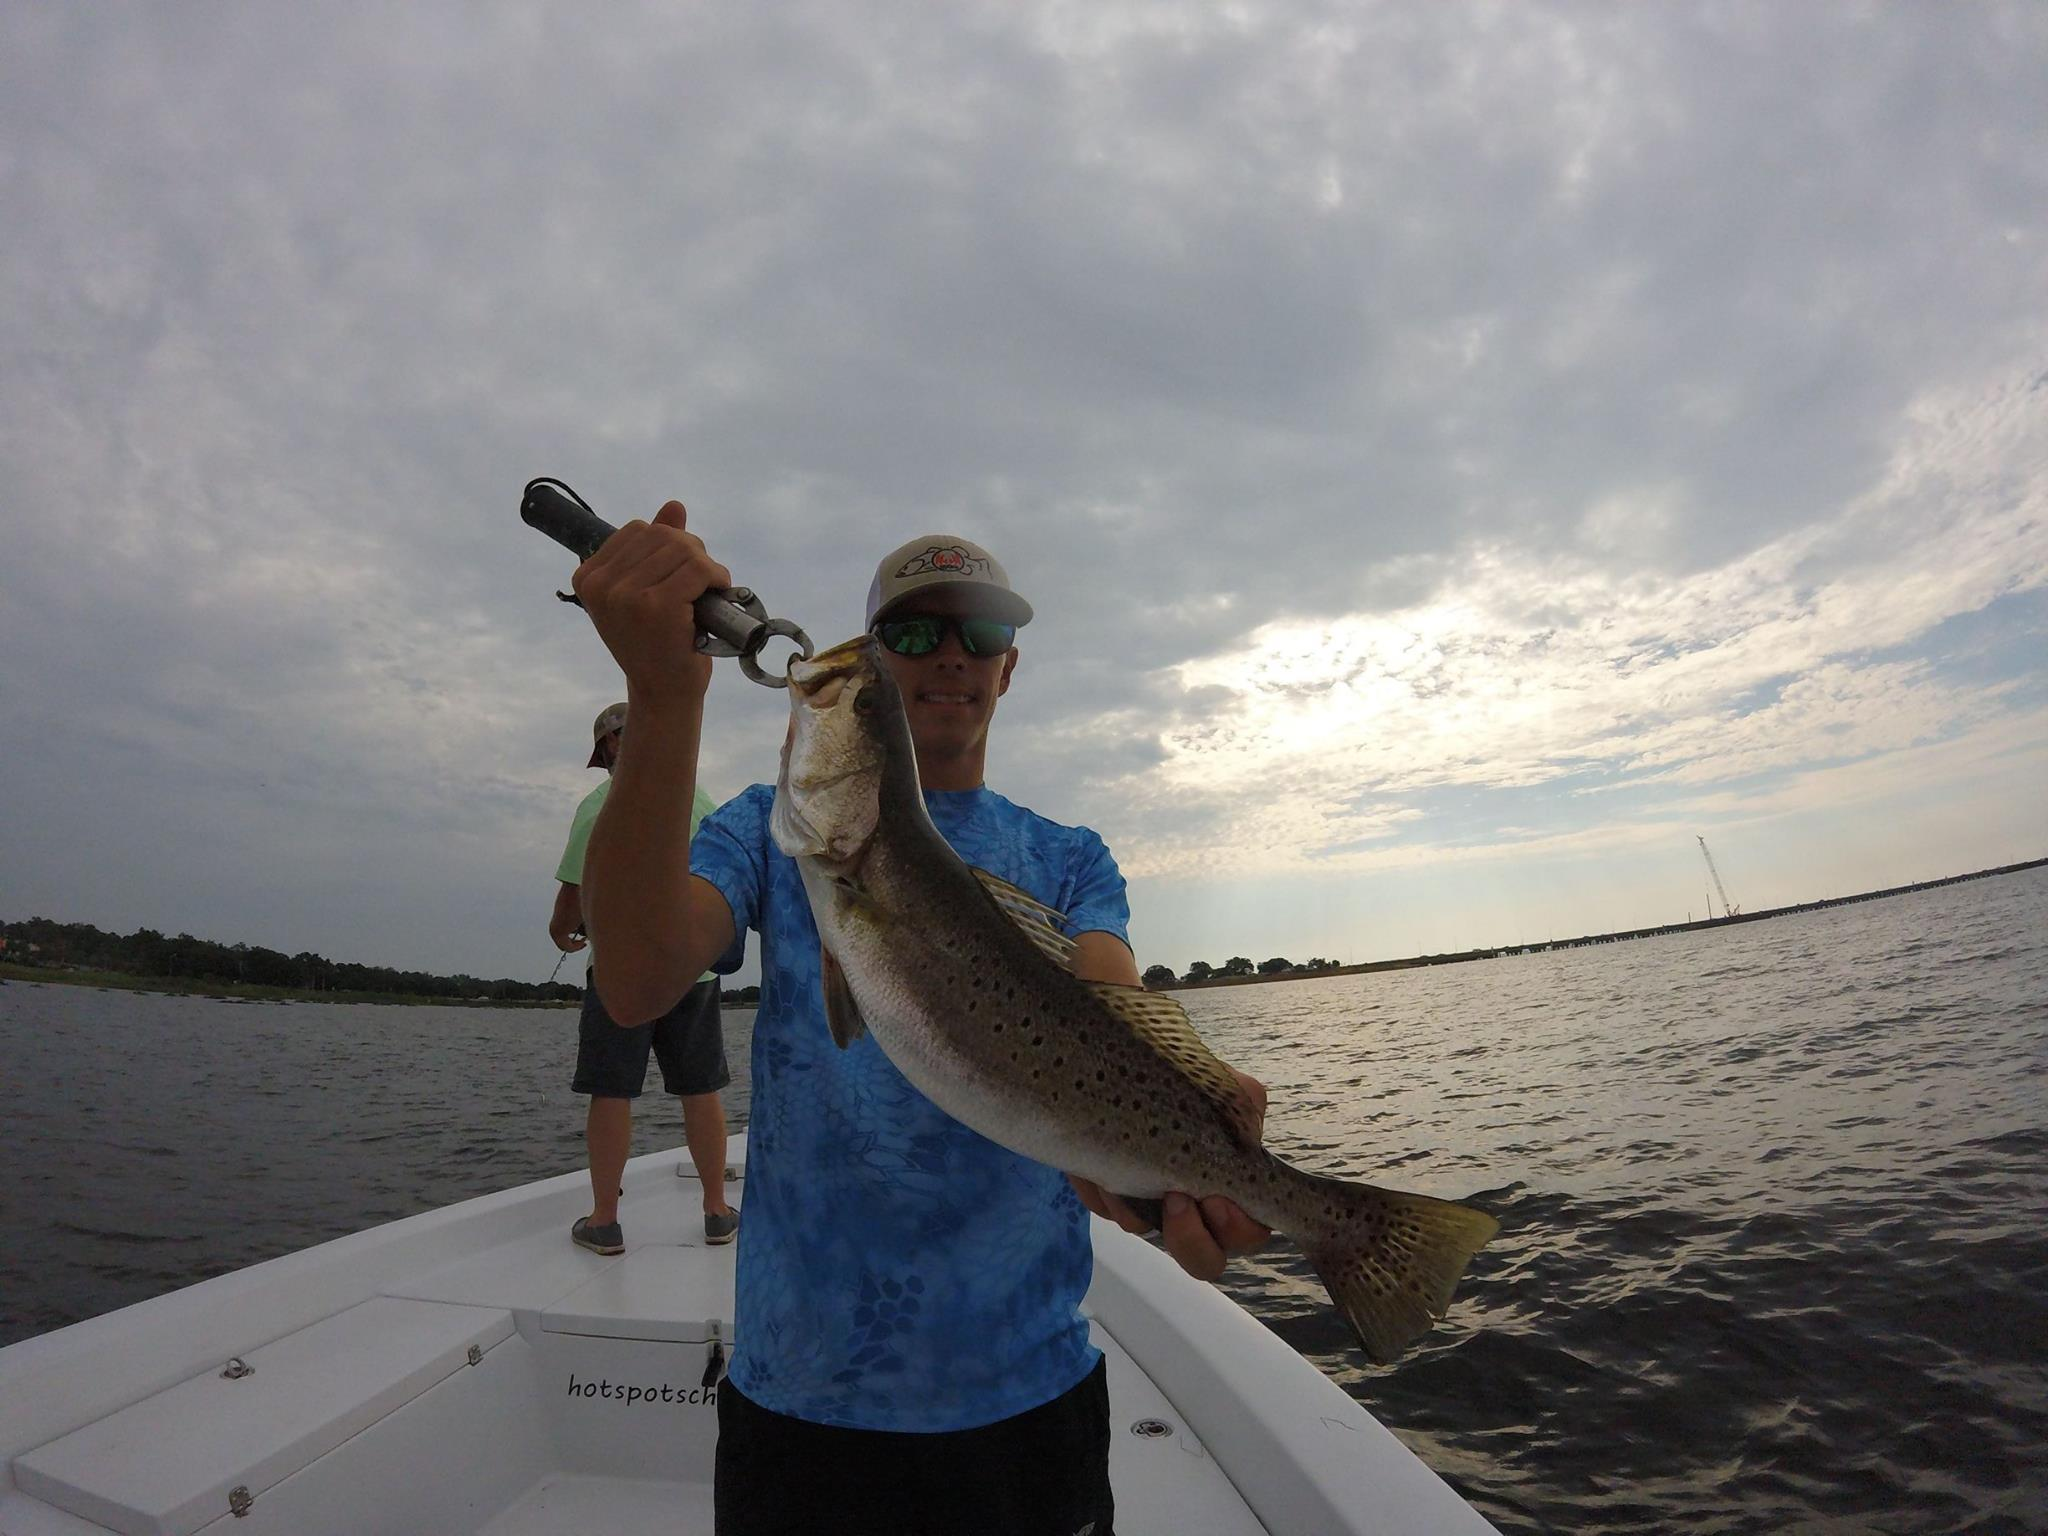 Hot spots report for pensacola fishing charters october for Pensacola bay fishing